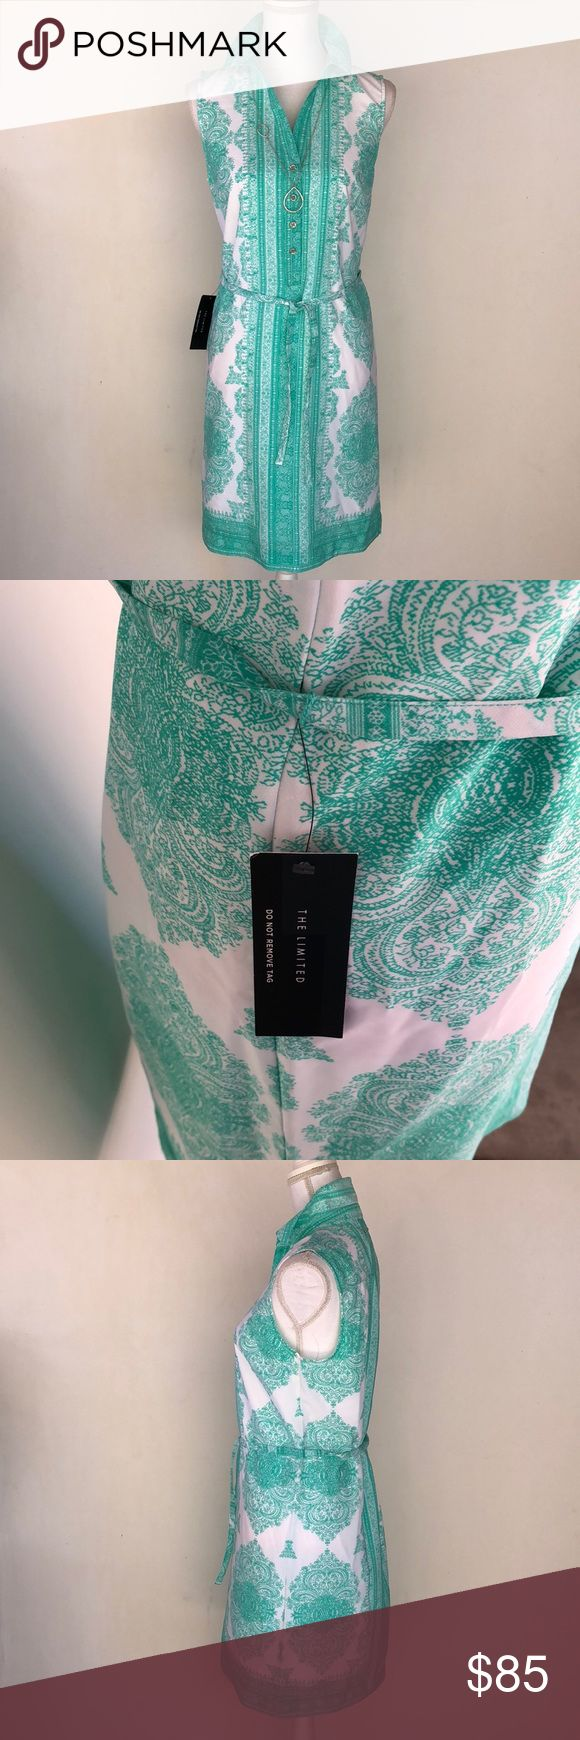 NWT The Limited Ashton Teal & White Dress, S This incredible NWT The Limited Ashton Teal & White Dress, S is perfect for just about any occasion! Wear t to work or out on the town with friends!  NWT EXCELLENT CONDITION NO DEFECTS PLEASE ASK FOR MEASUREMENTS BEFORE PURCHASING The Limited Dresses